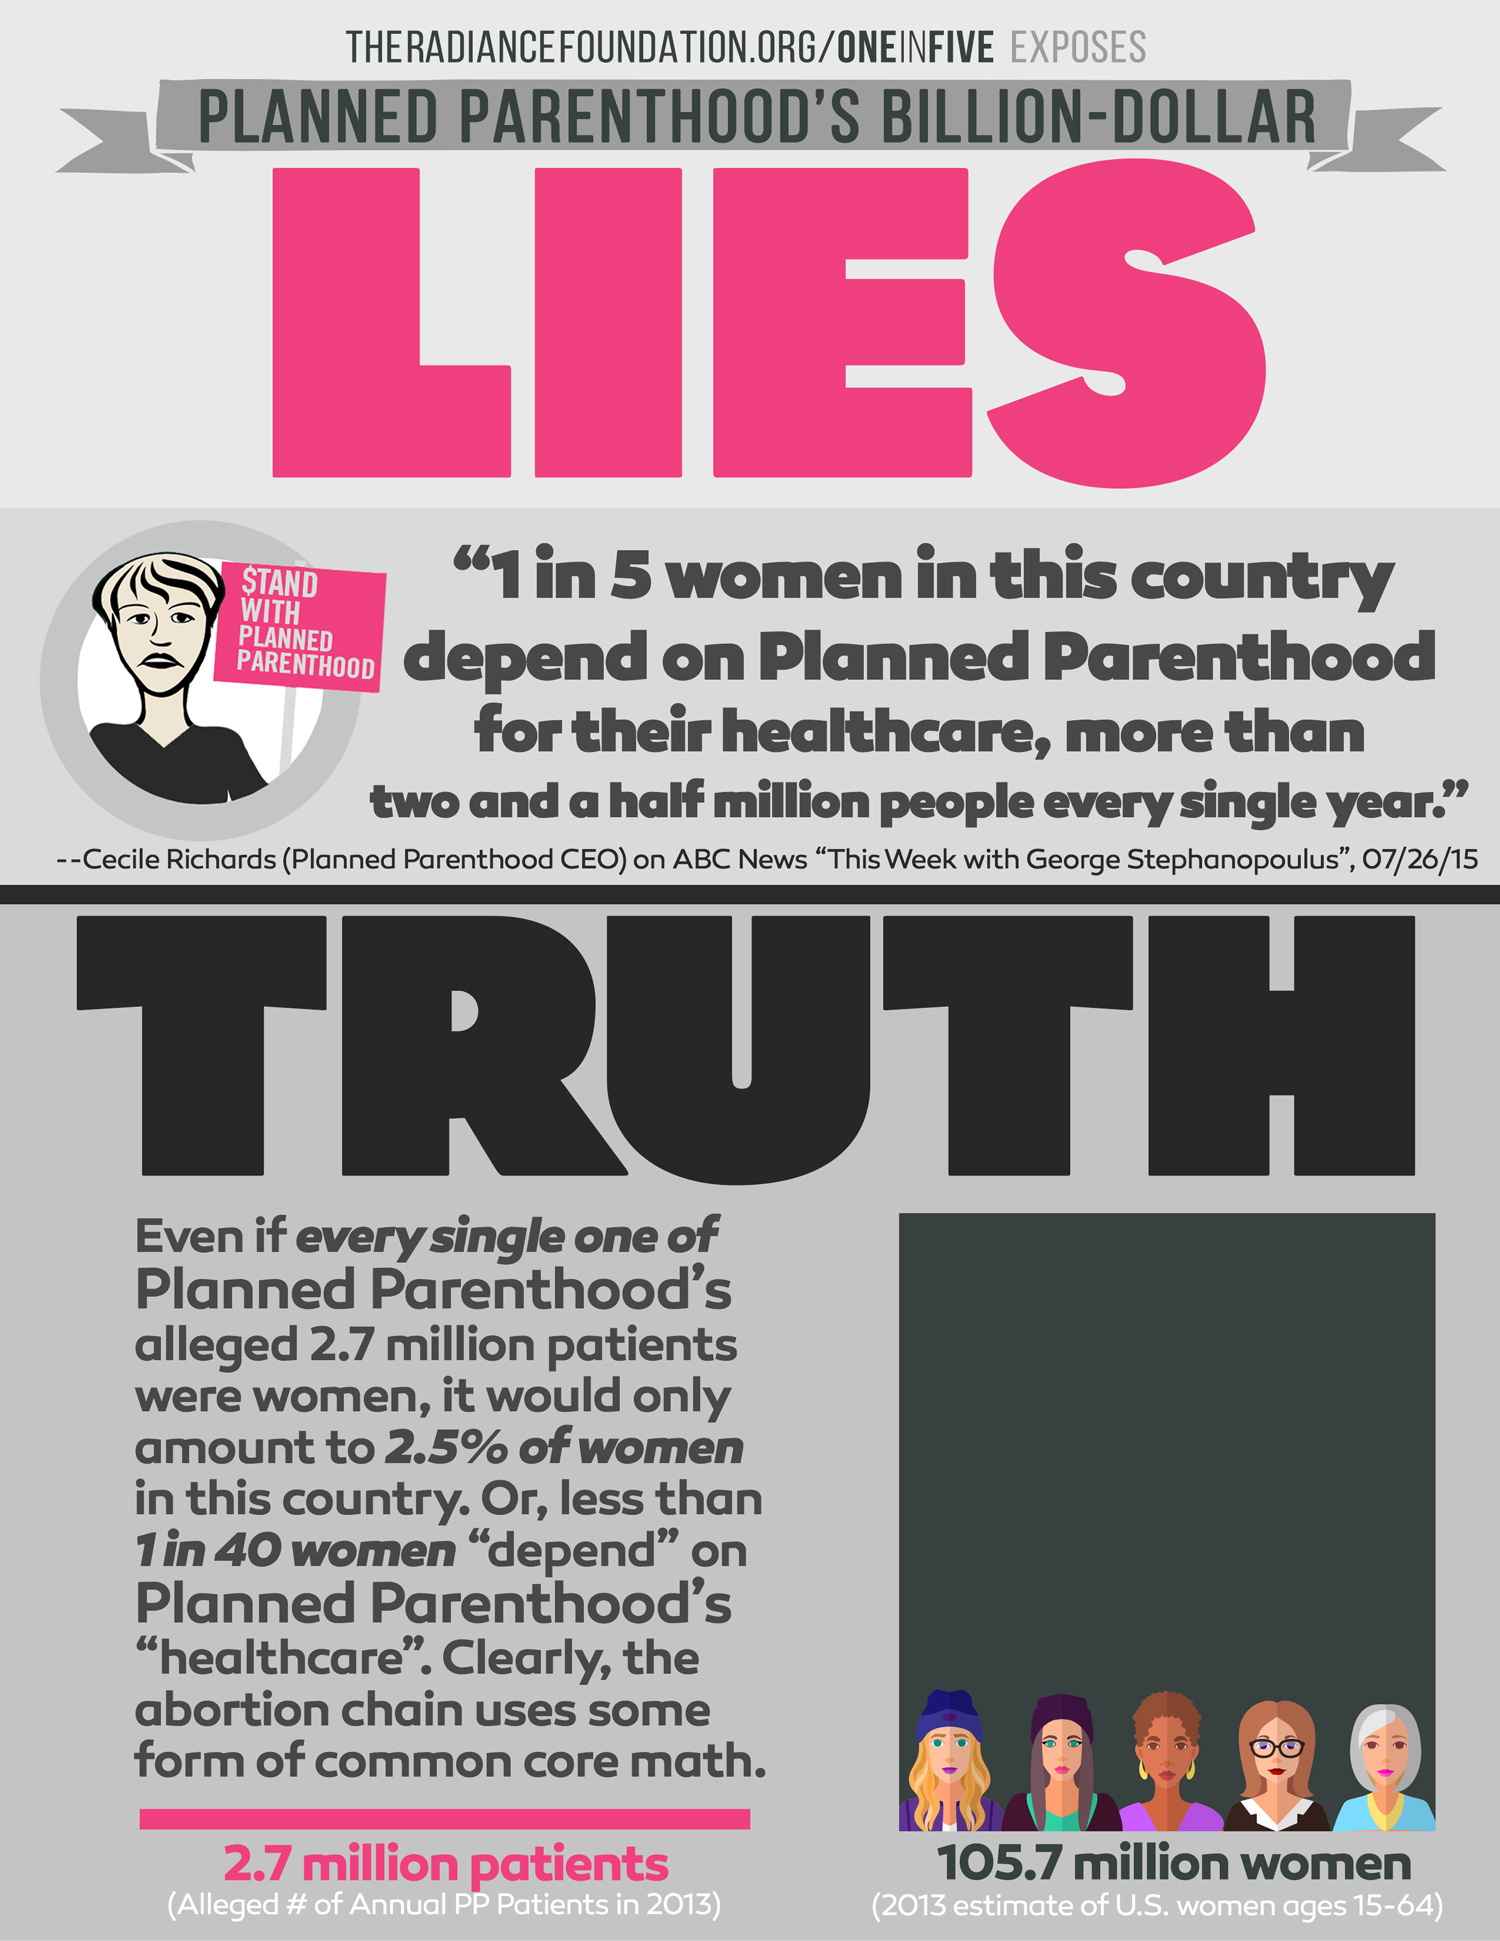 """""""PLANNED PARENTHOOD'S 1 IN 5 LIE"""" by The Radiance Foundation"""